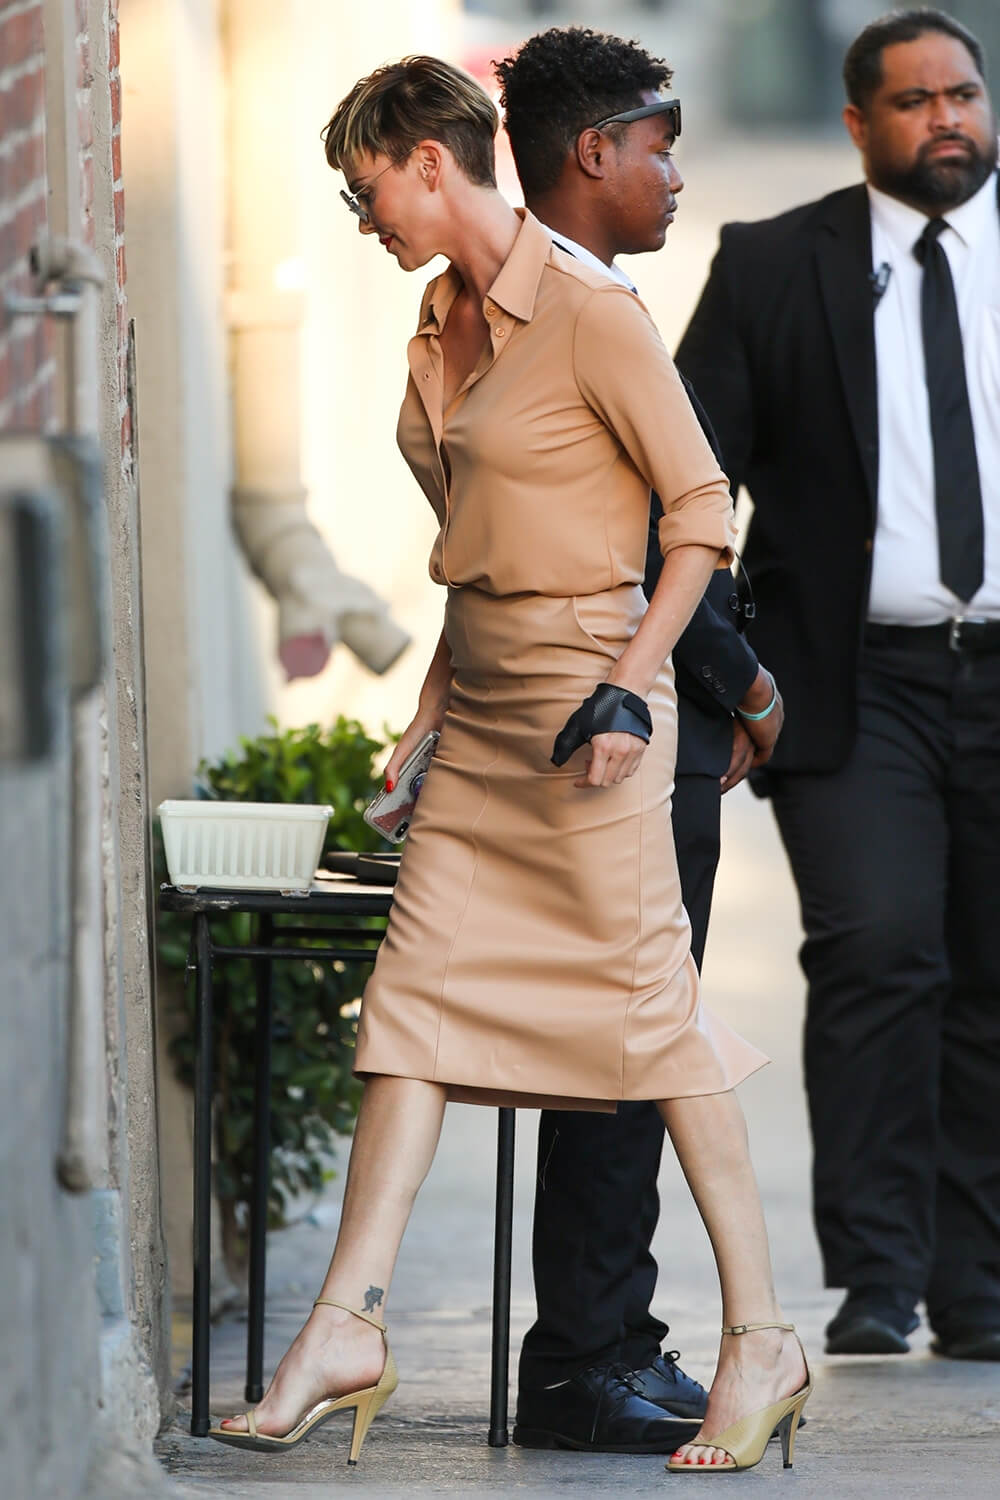 Charlize Theron makes a stylish arrival at Jimmy Kimmel Live